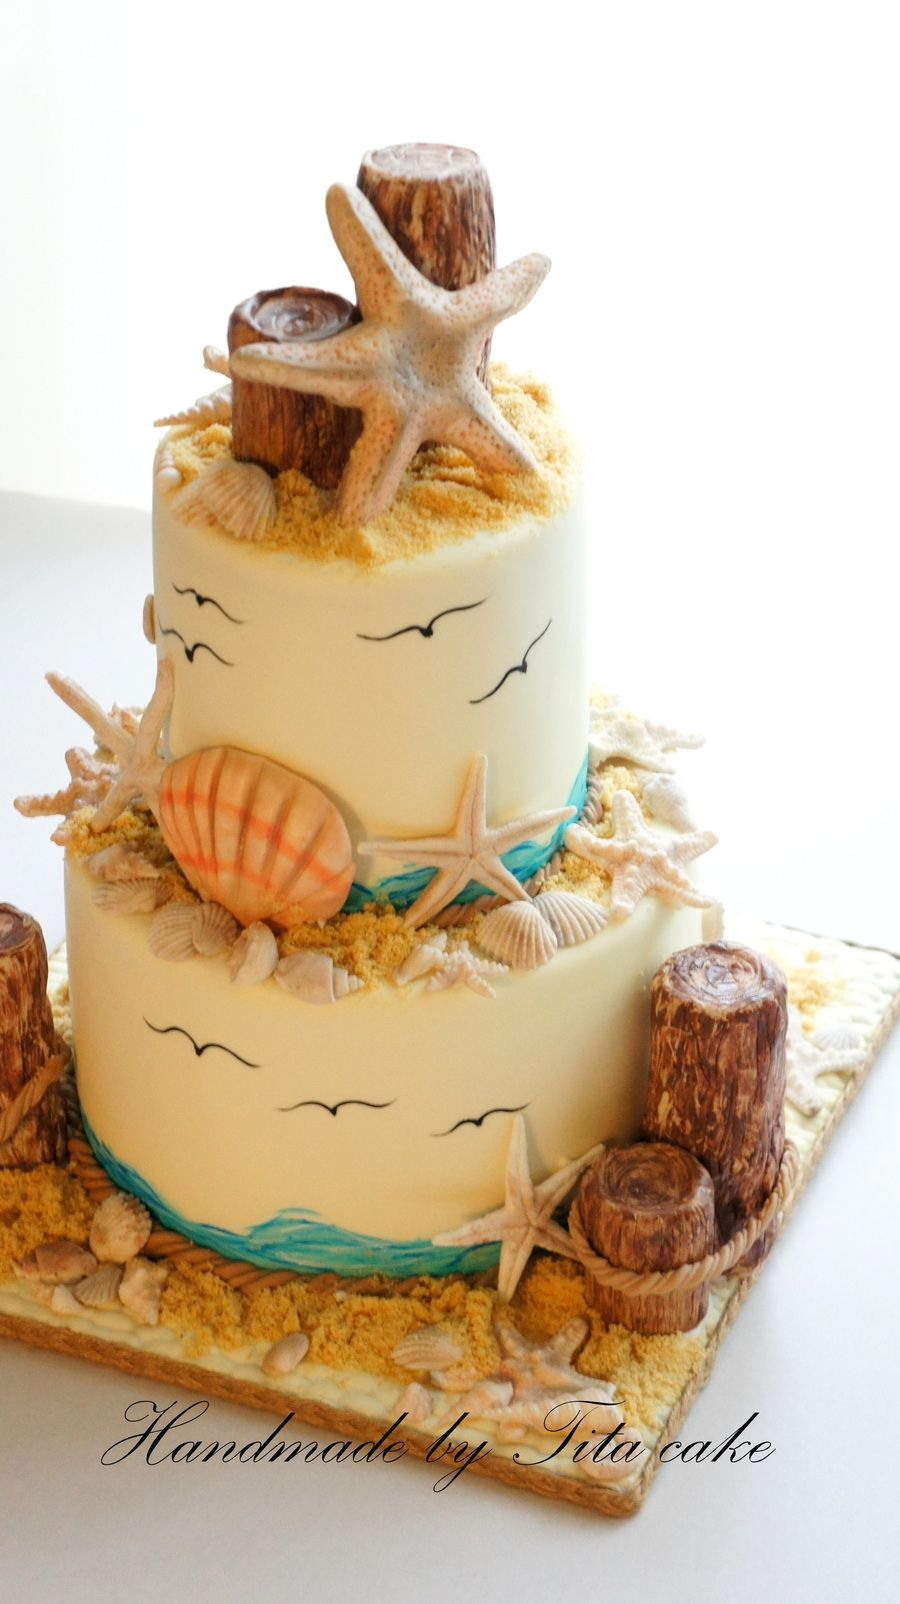 Beach Cake Handmade by Tita | Wedding Stuff | Pinterest | Beach ...